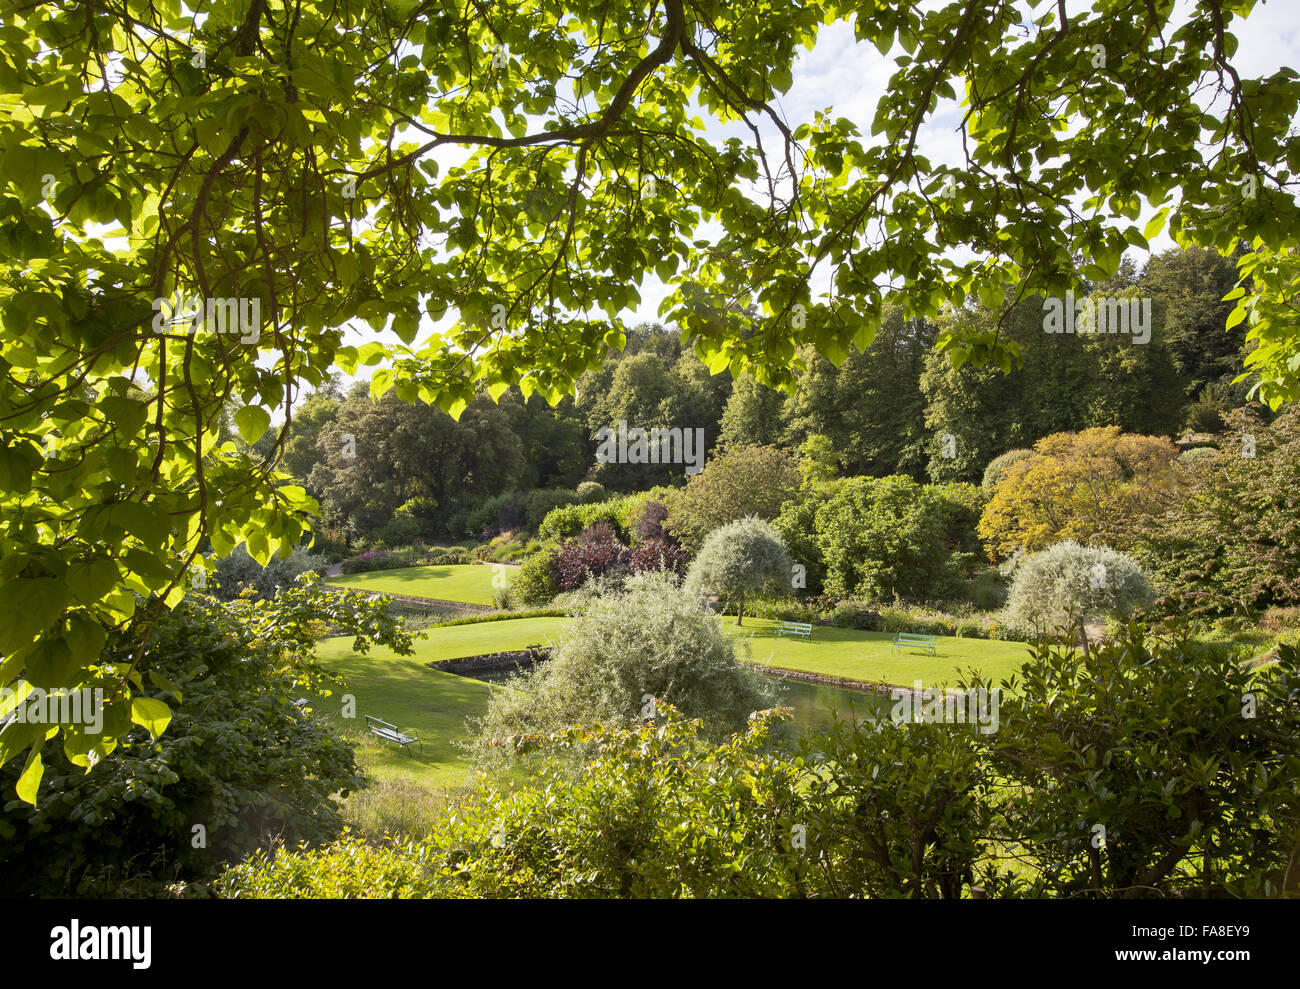 View towards the pond in the garden at Dyrham Park, Gloucestershire. - Stock Image